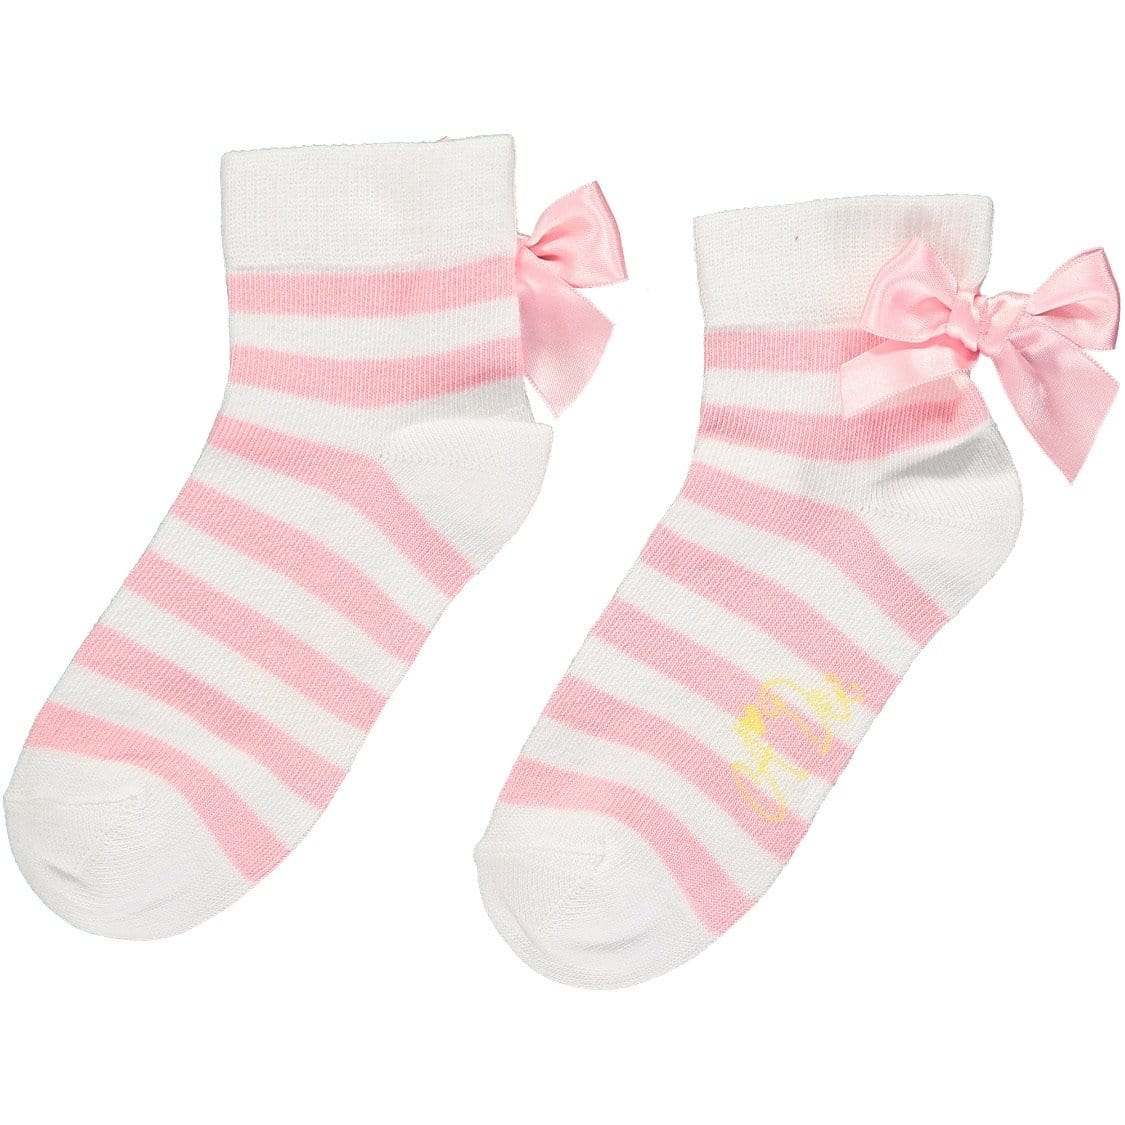 A DEE ROSE PINK STRIPE ANKLE SOCKS BEA S202919